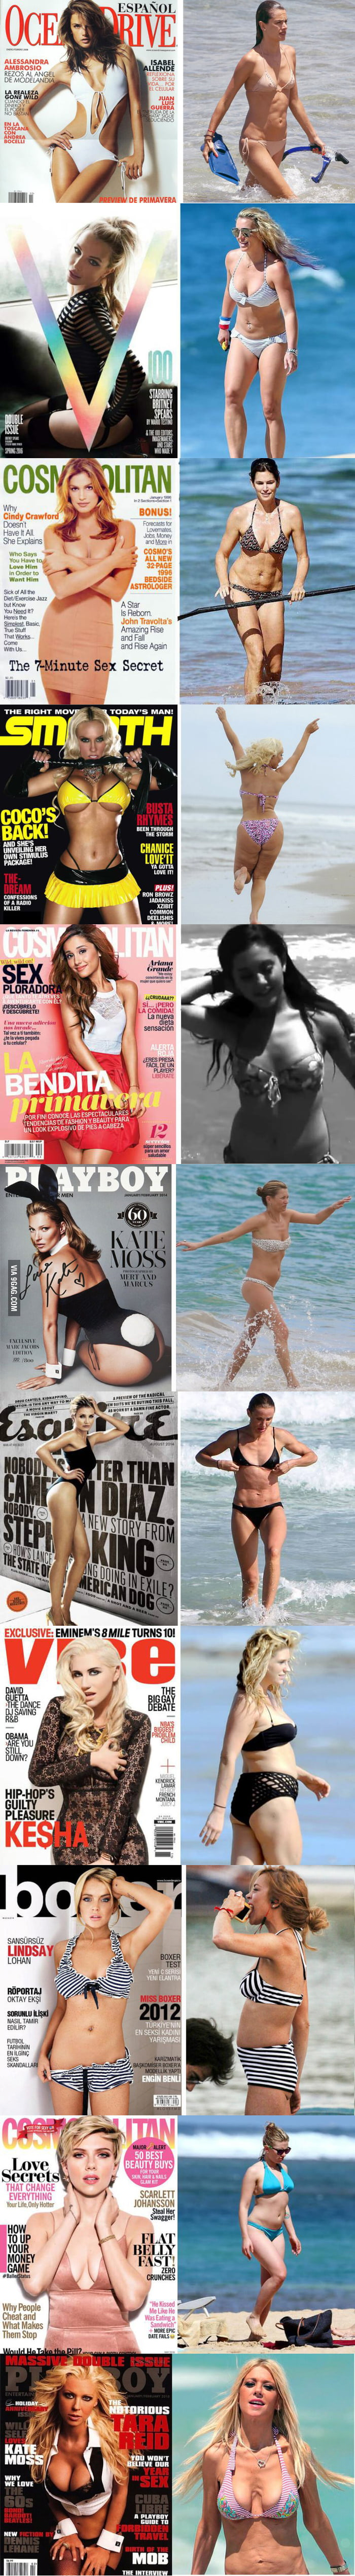 The stars on the covers of magazines and in real life